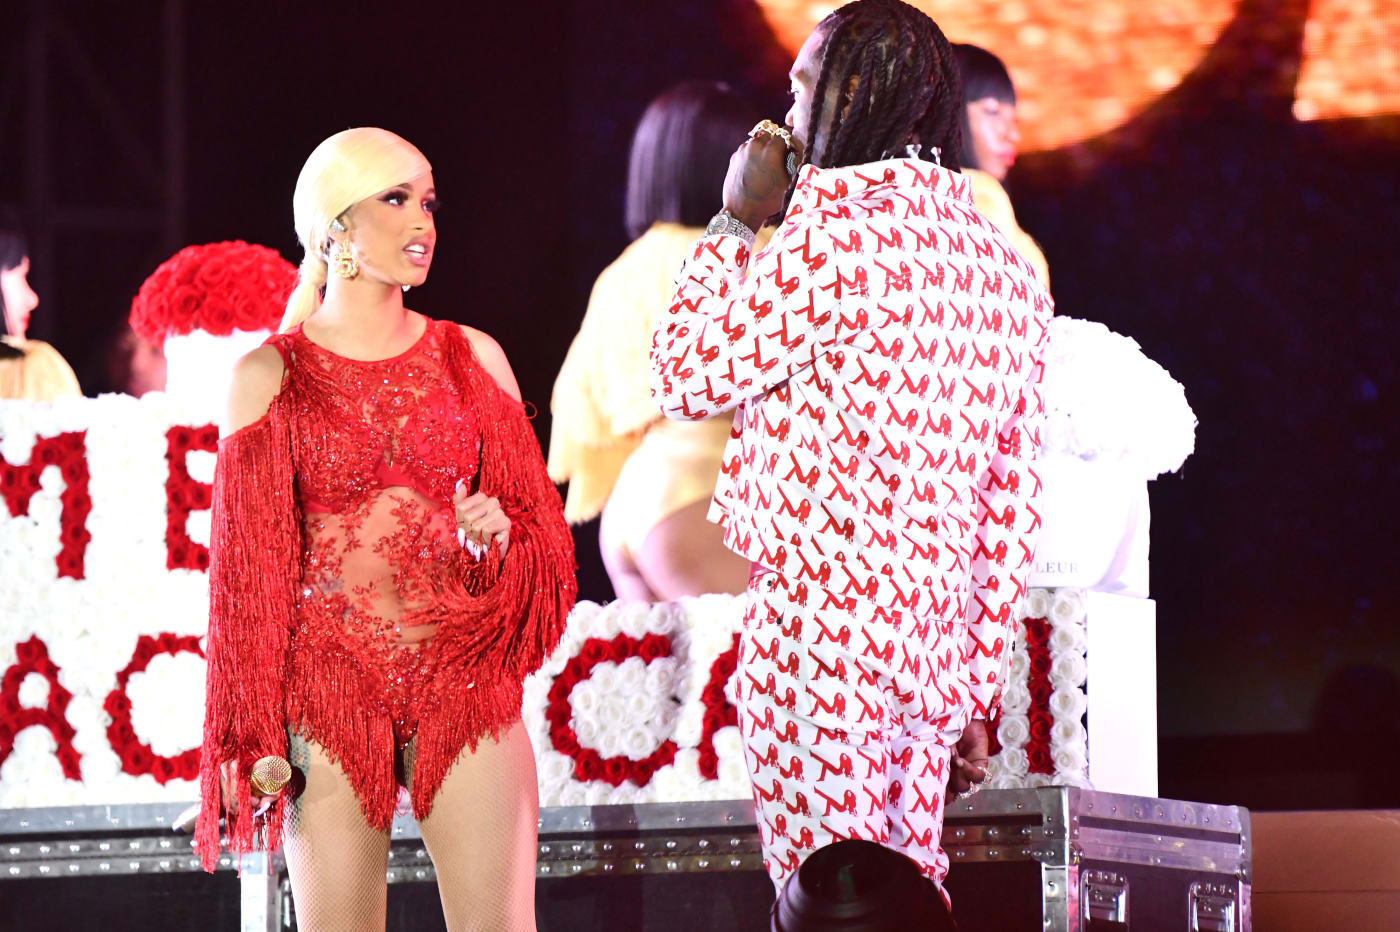 : Singer Cardi B is presented a 'Take Me Back' card onstage by Offset.